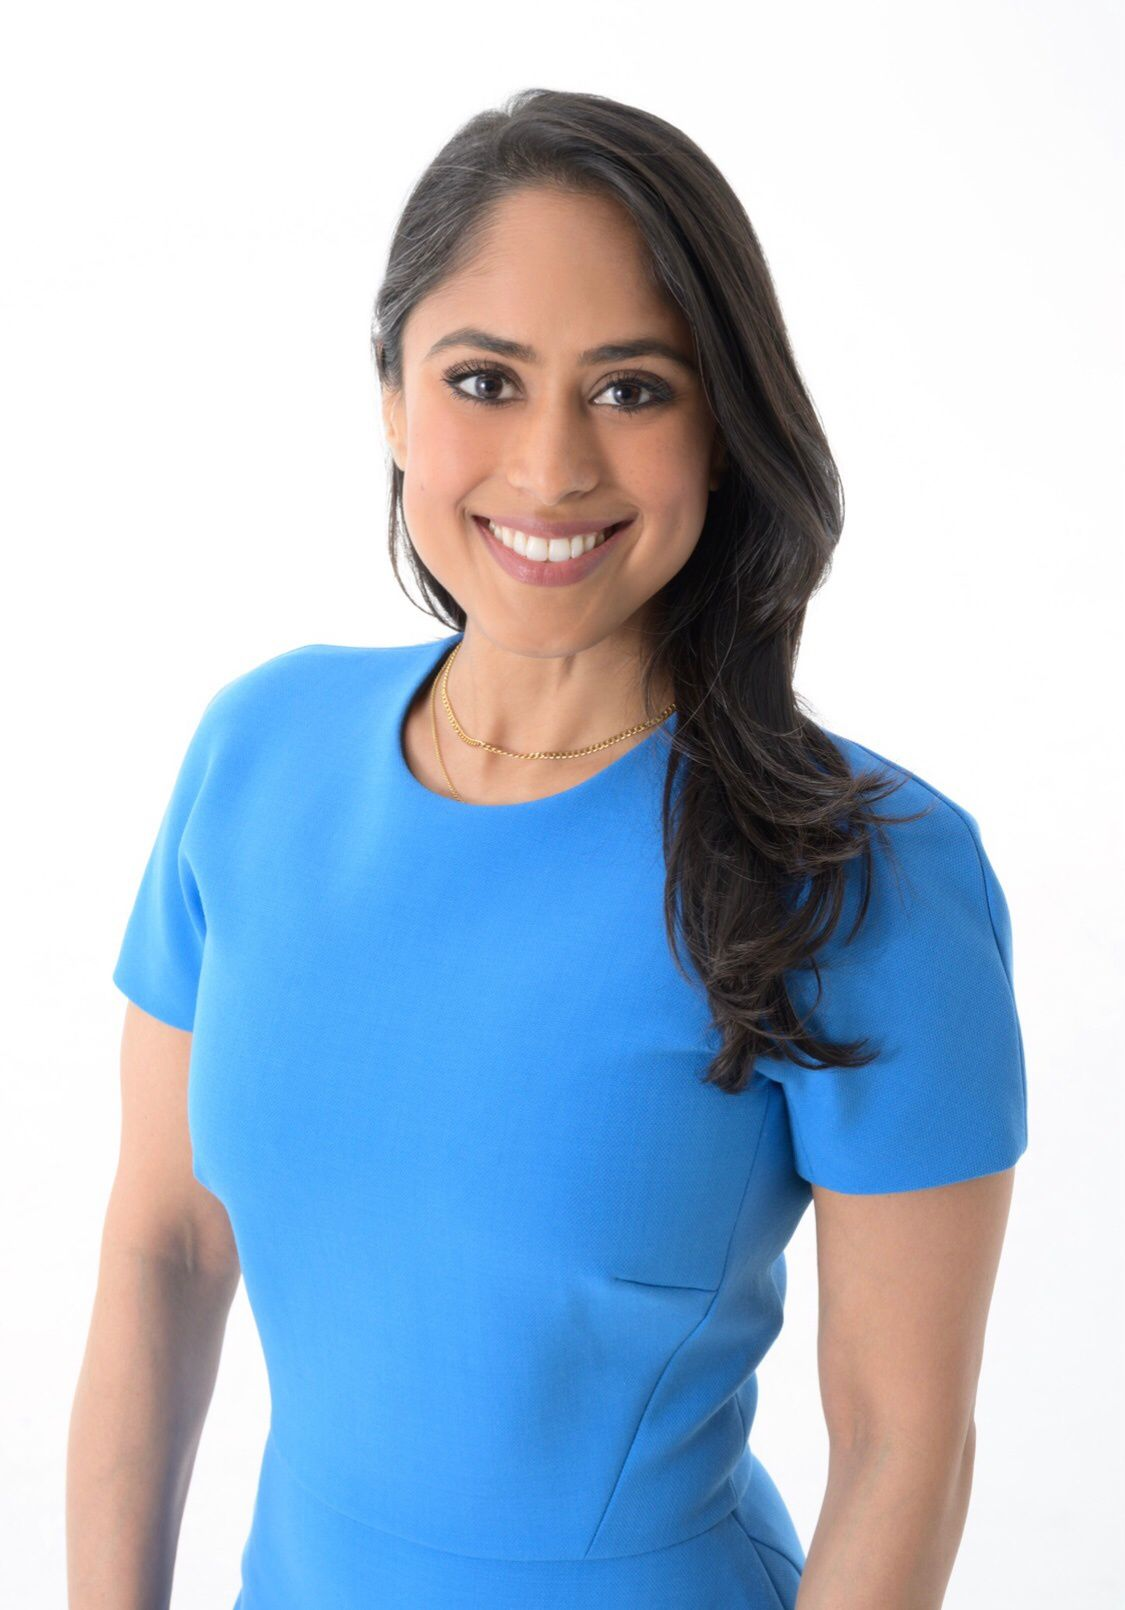 Sana Syed, Dallas City Council District 2 candidate. (Photo by Carmine LiDestri)